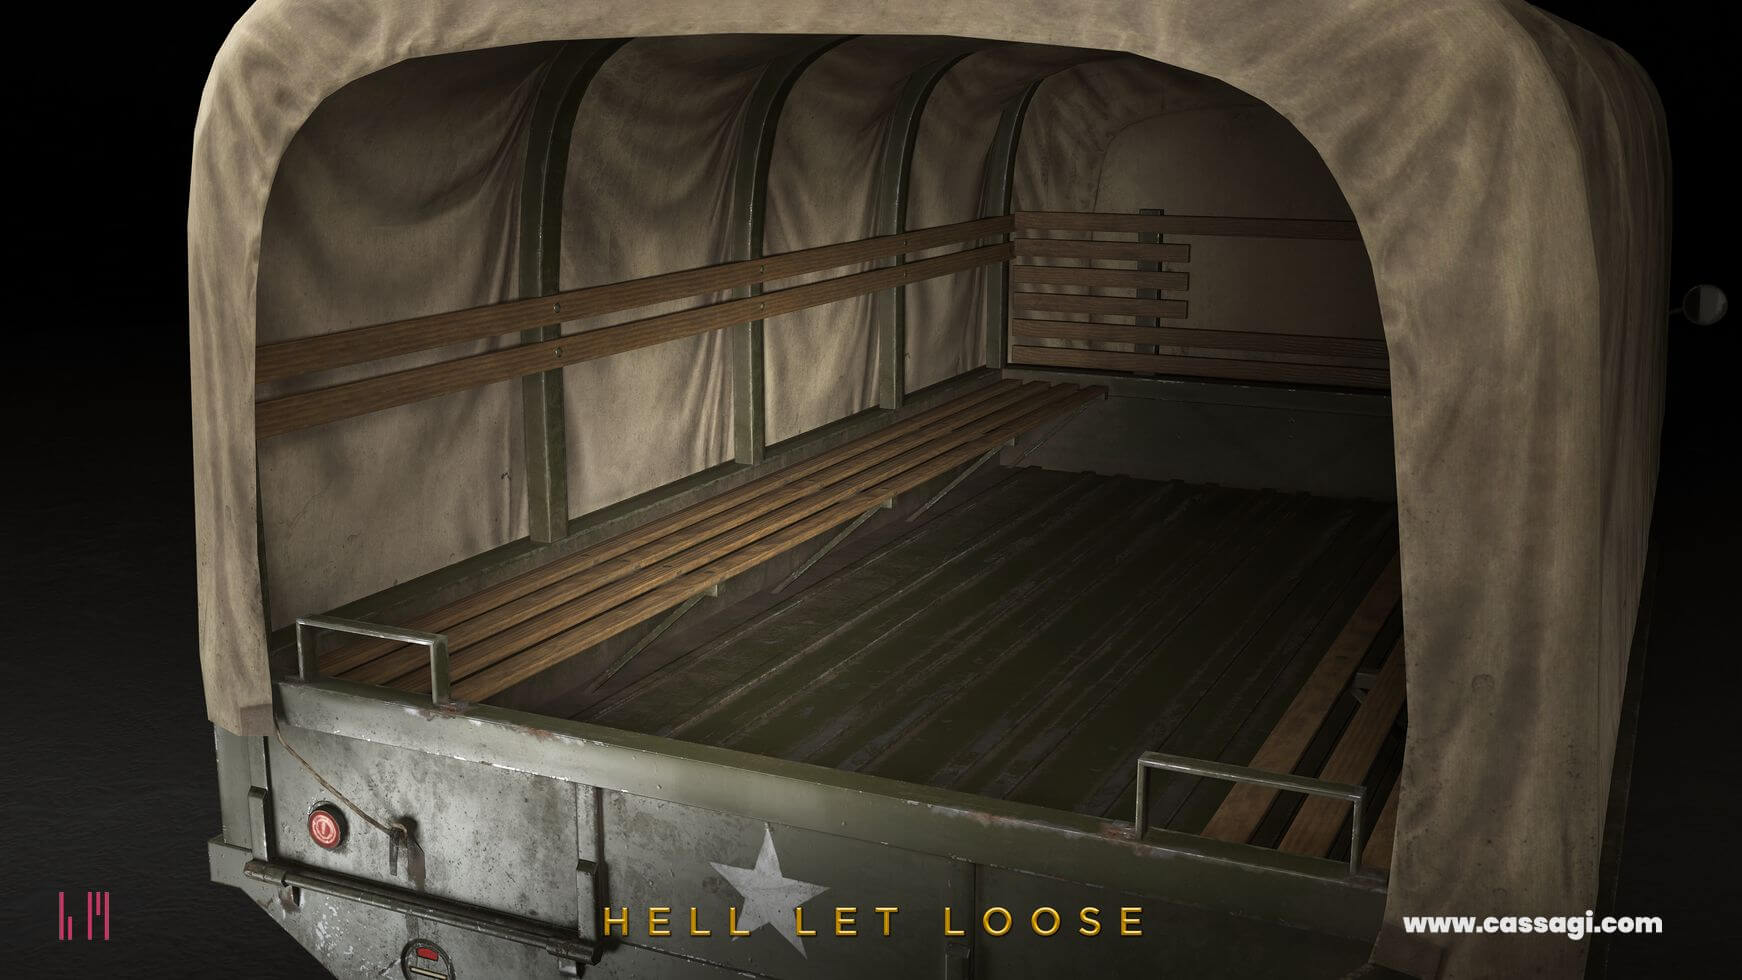 hell let loose GMC CCKW 353 cargo in game model